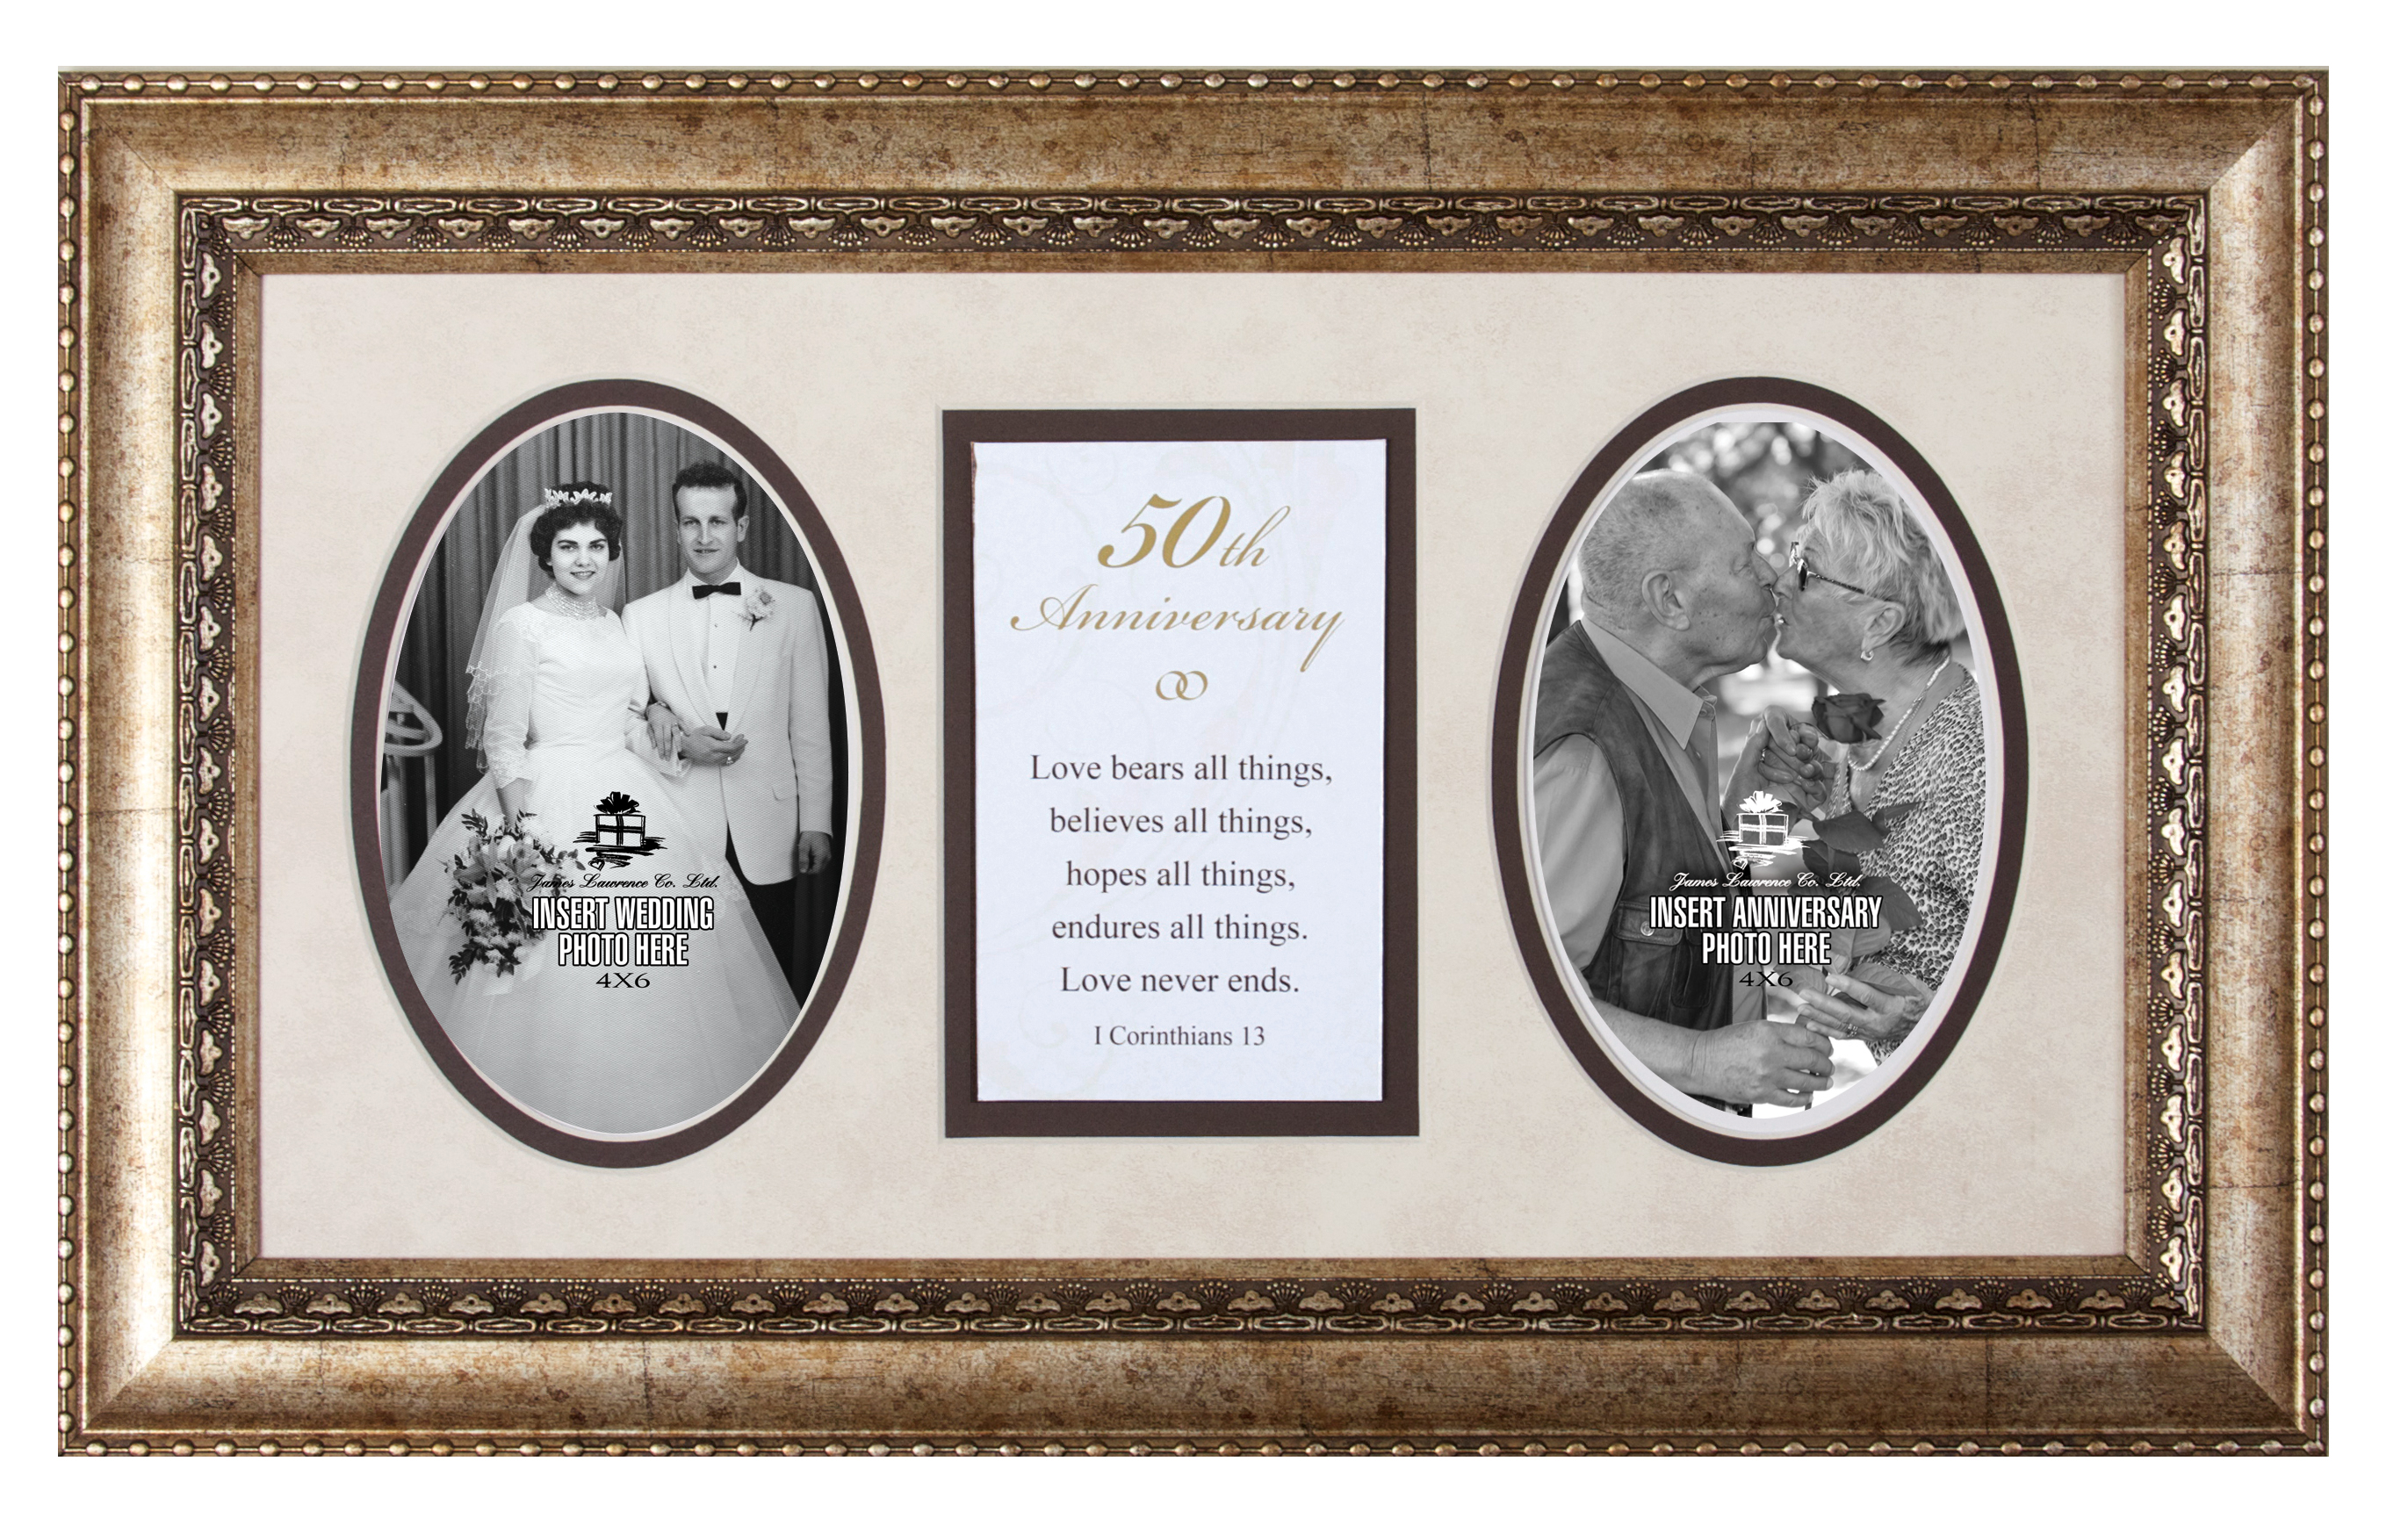 50th Anniversary Photo Frame with Verse framed picture, inspirational message, home decor, wall decor, framed art, words of grace, 2594